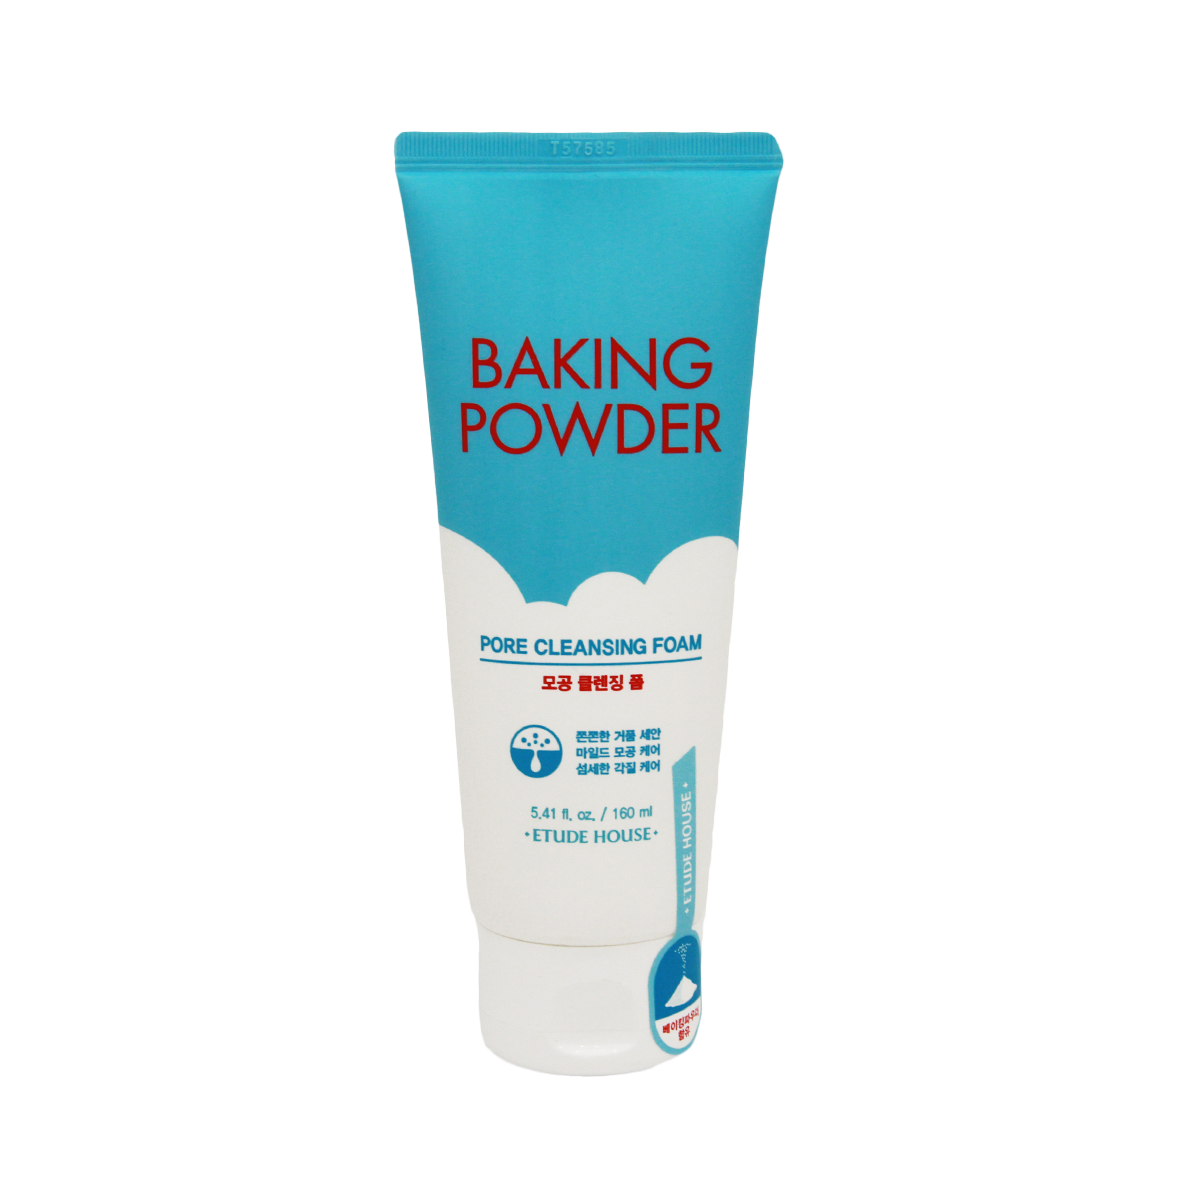 Очищение кожи Пенка для умывания с содой Etude House Baking Powder Pore Cleansing Foam, 160 мл import_files_f9_f93661e559f611e980fb3408042974b1_a4e0ba945e3111e980fc3408042974b1.png